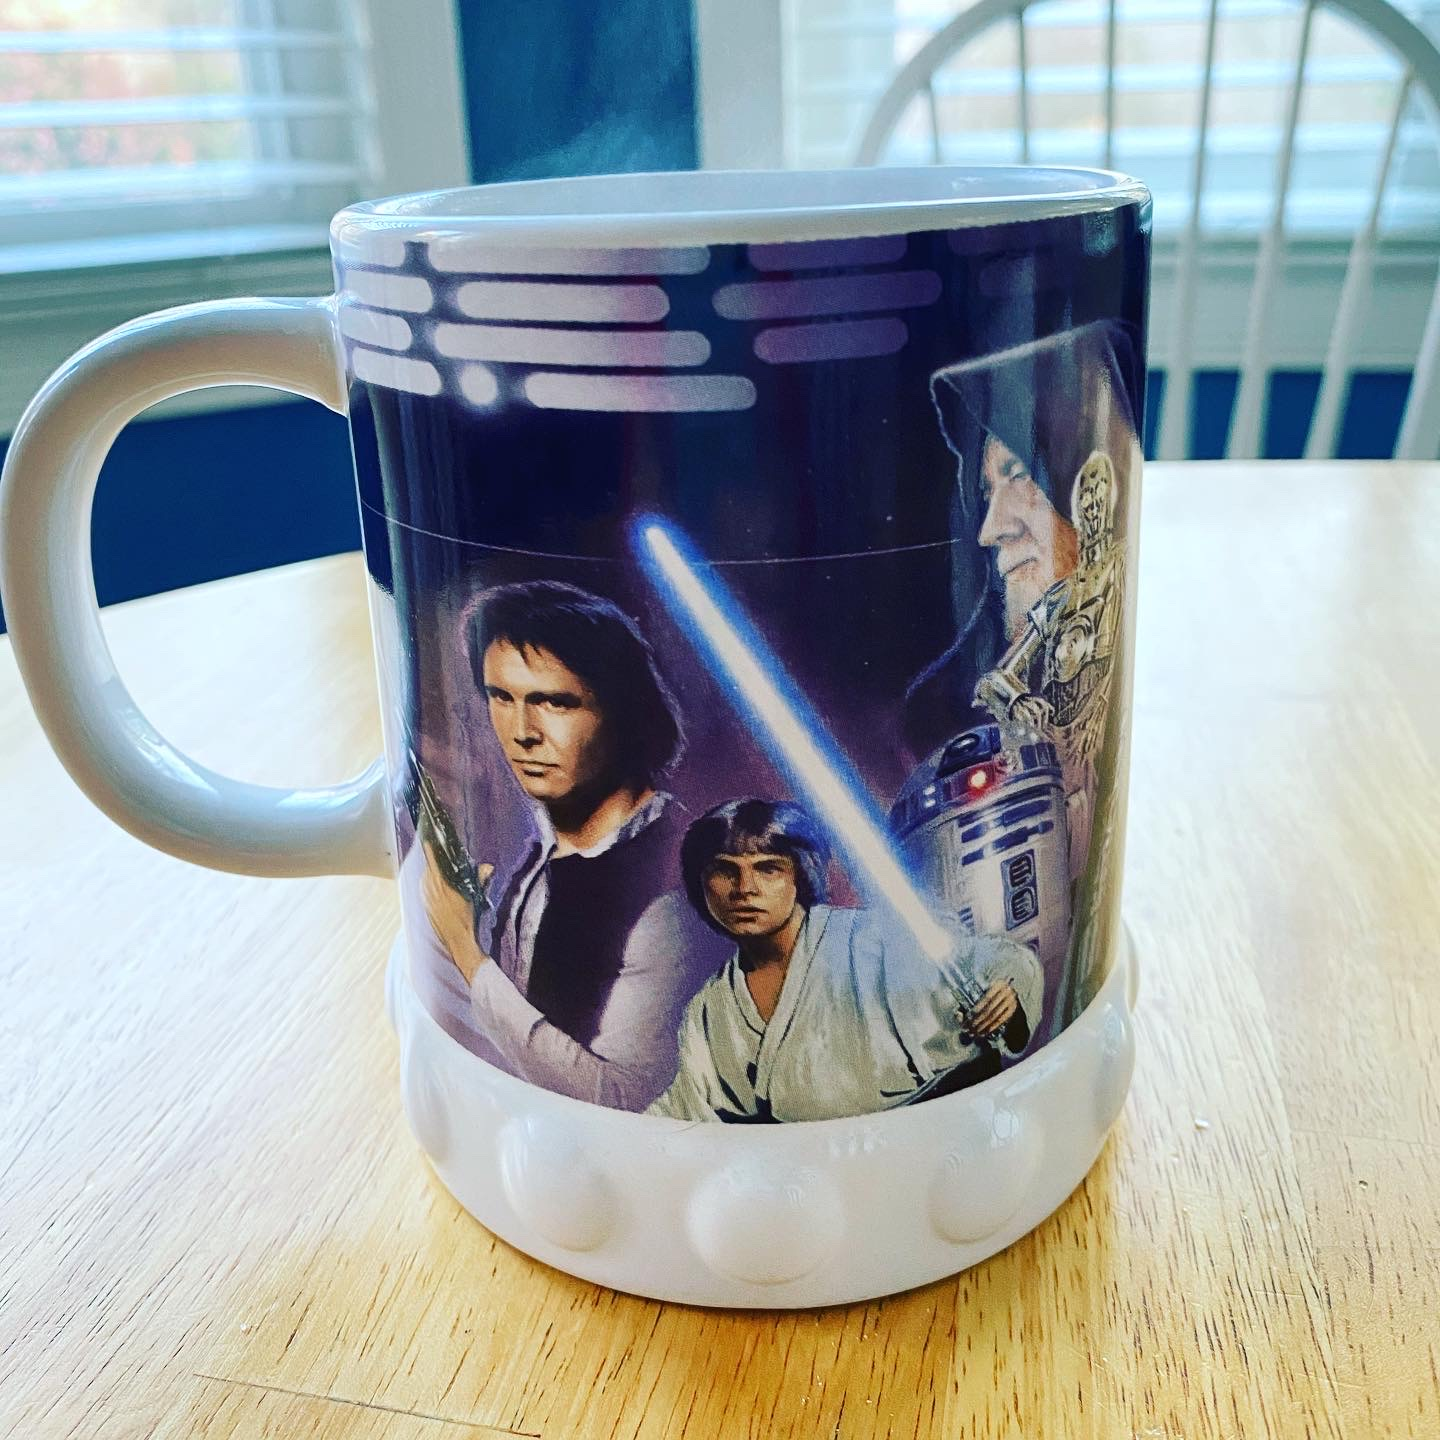 Star Wars Original coffee mug photo denise m. colby #disneymugs post